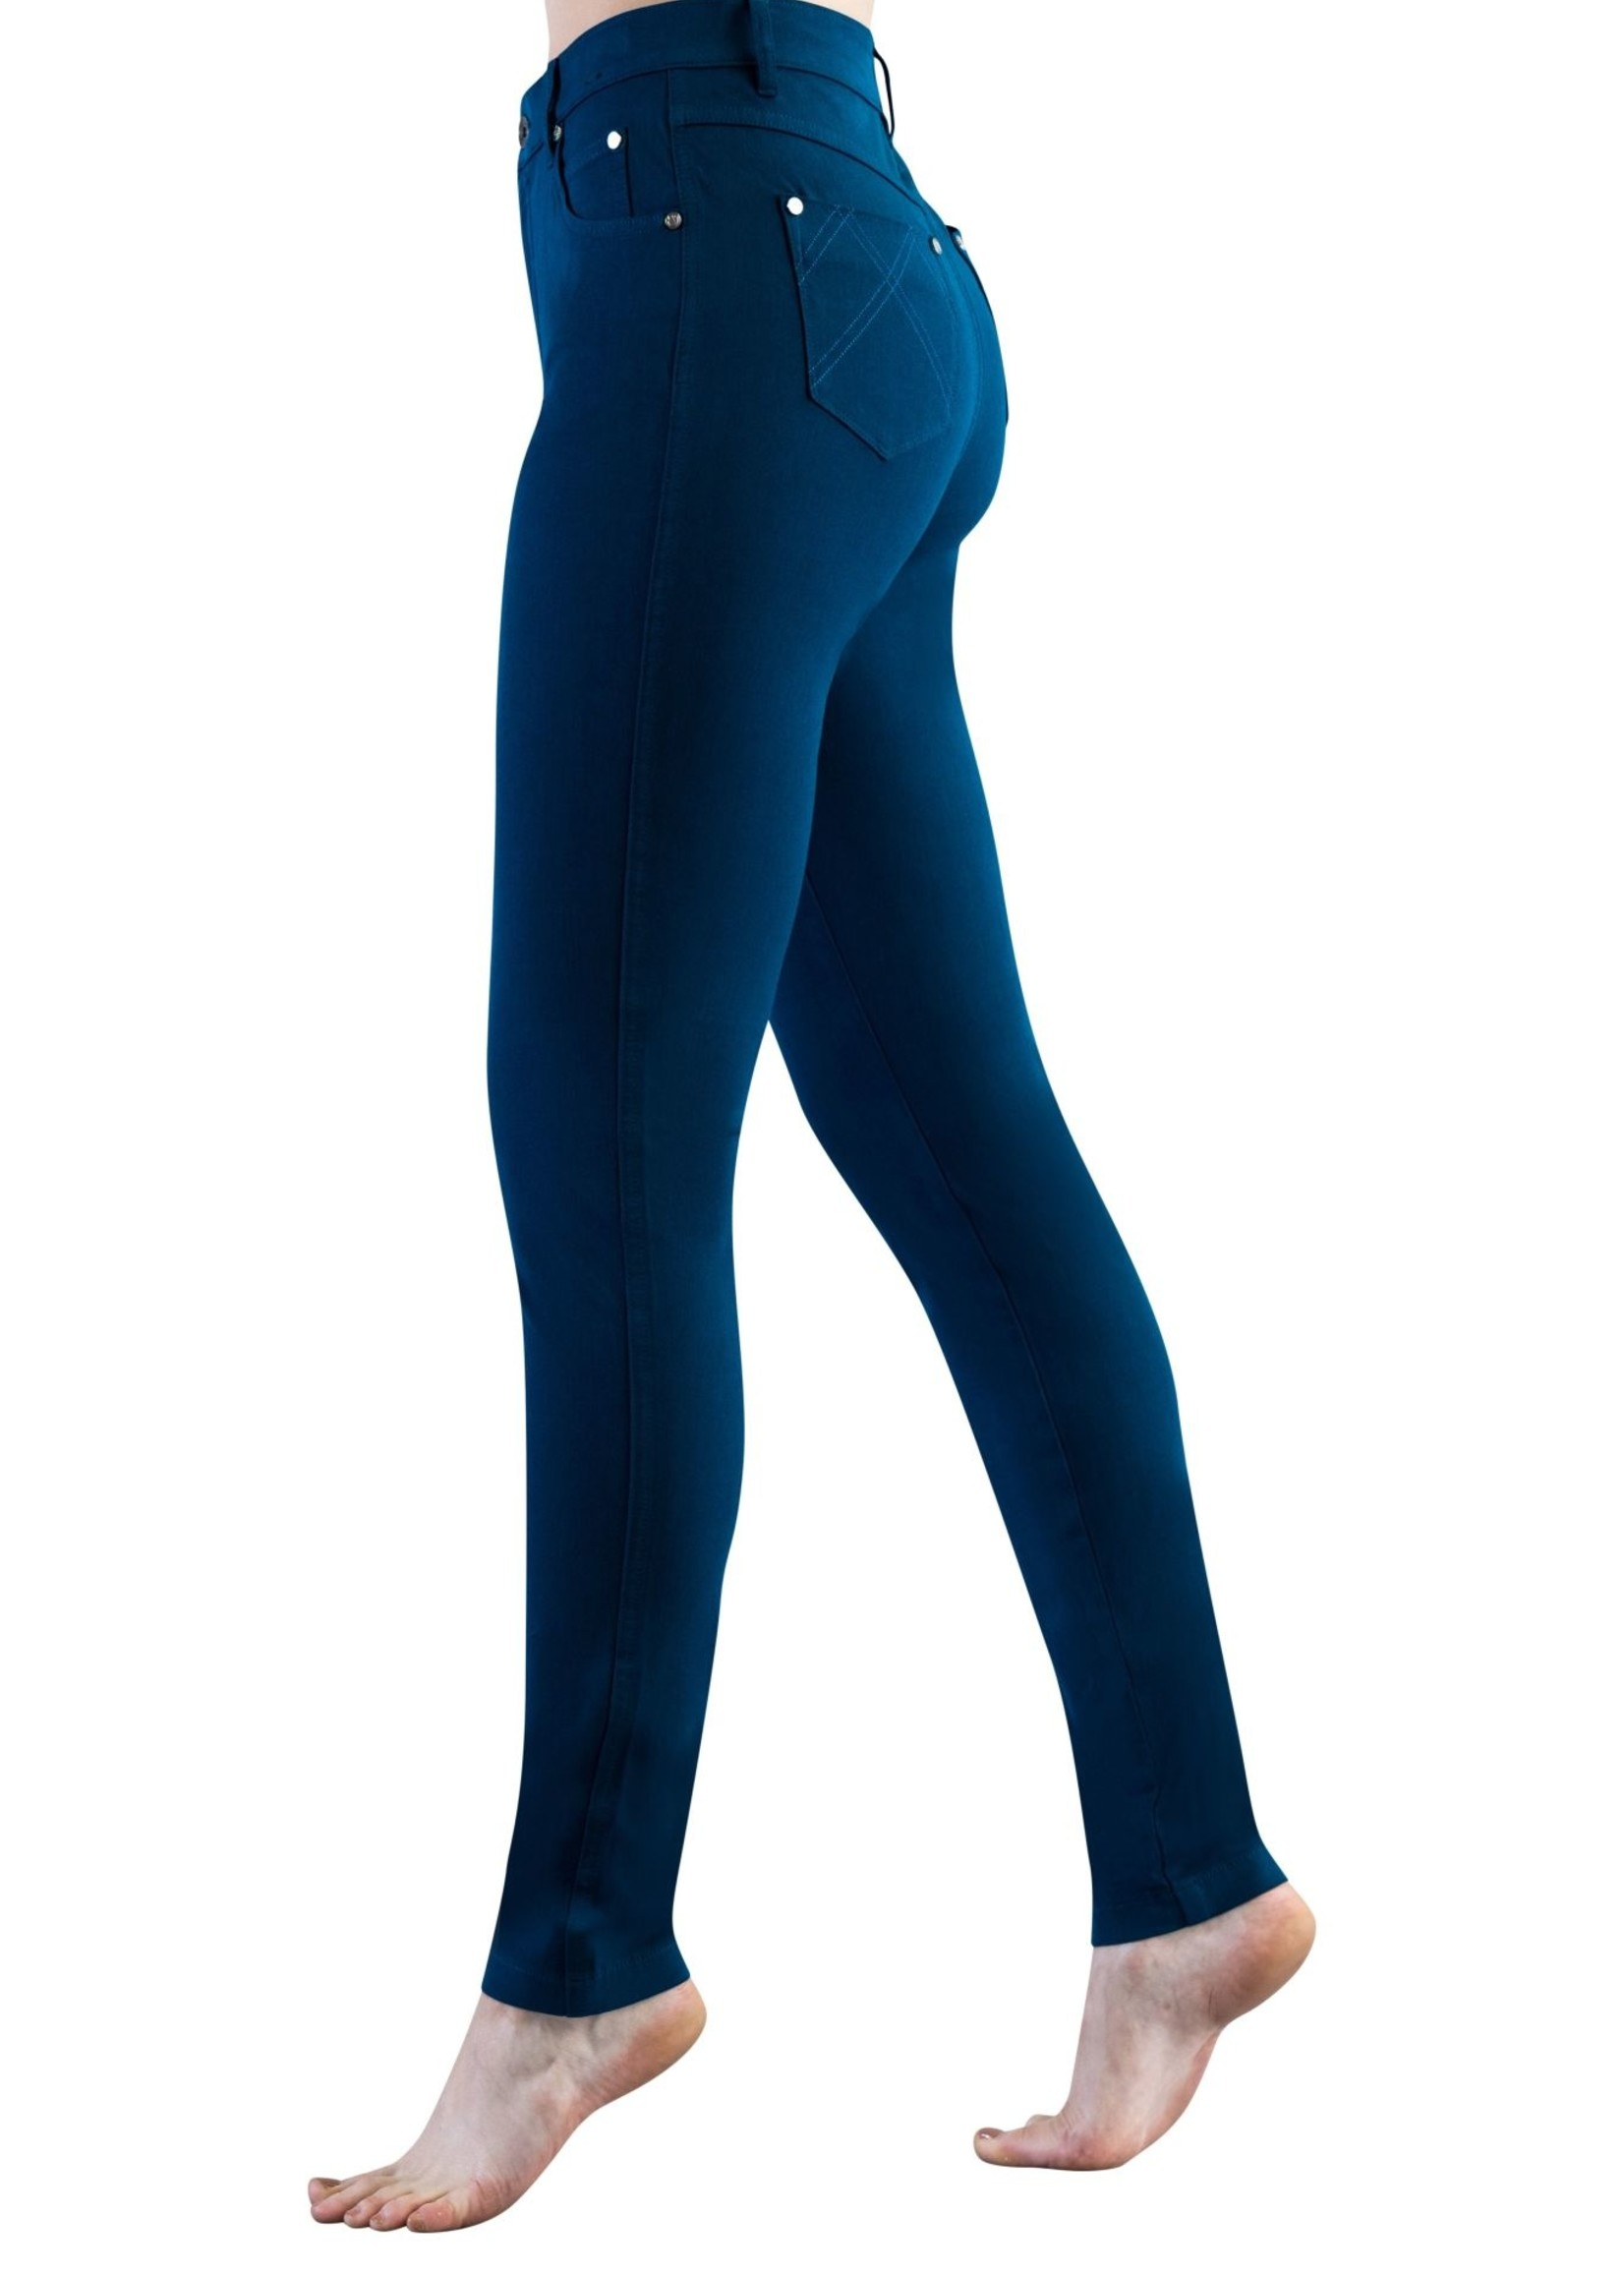 Marble Marble Jeans 4 Way Stretch Marine